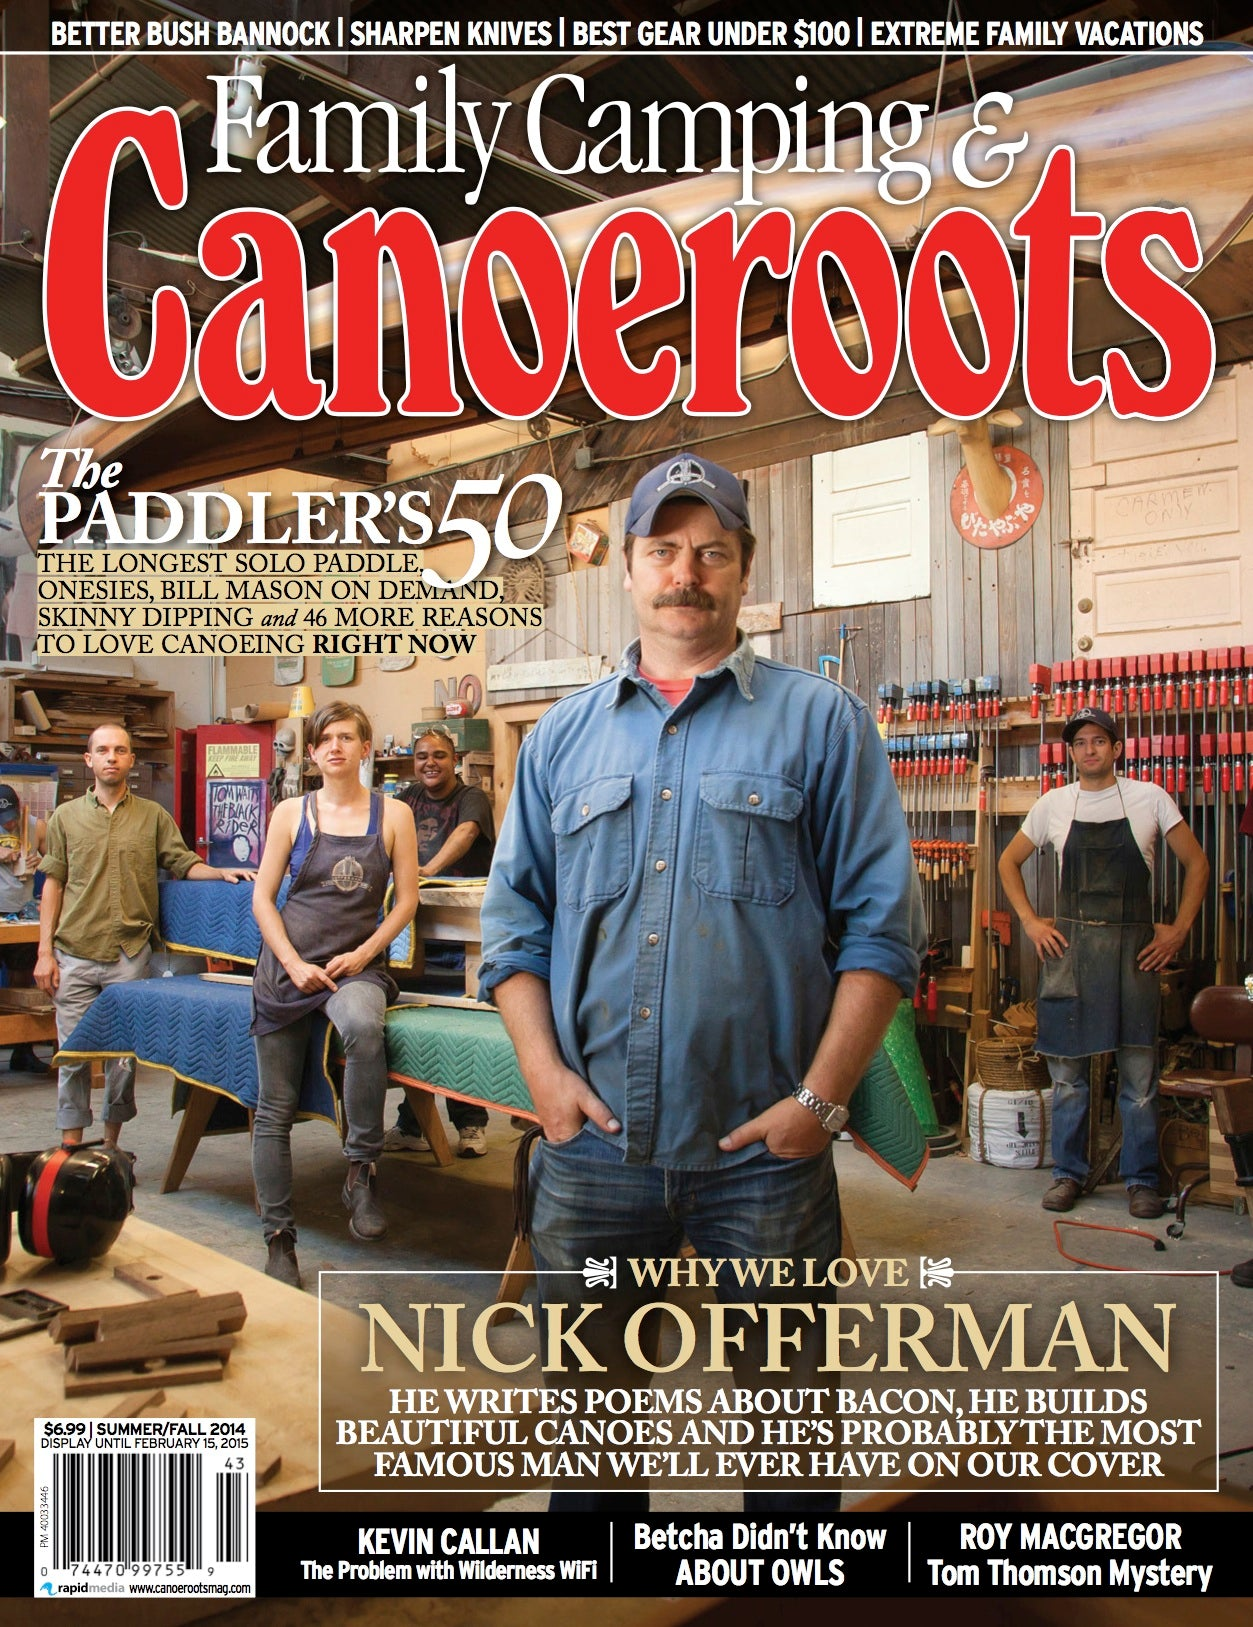 Bear Mountain Boats in Canoeroots magazine, Nick Offerman, Summer Fall 2014